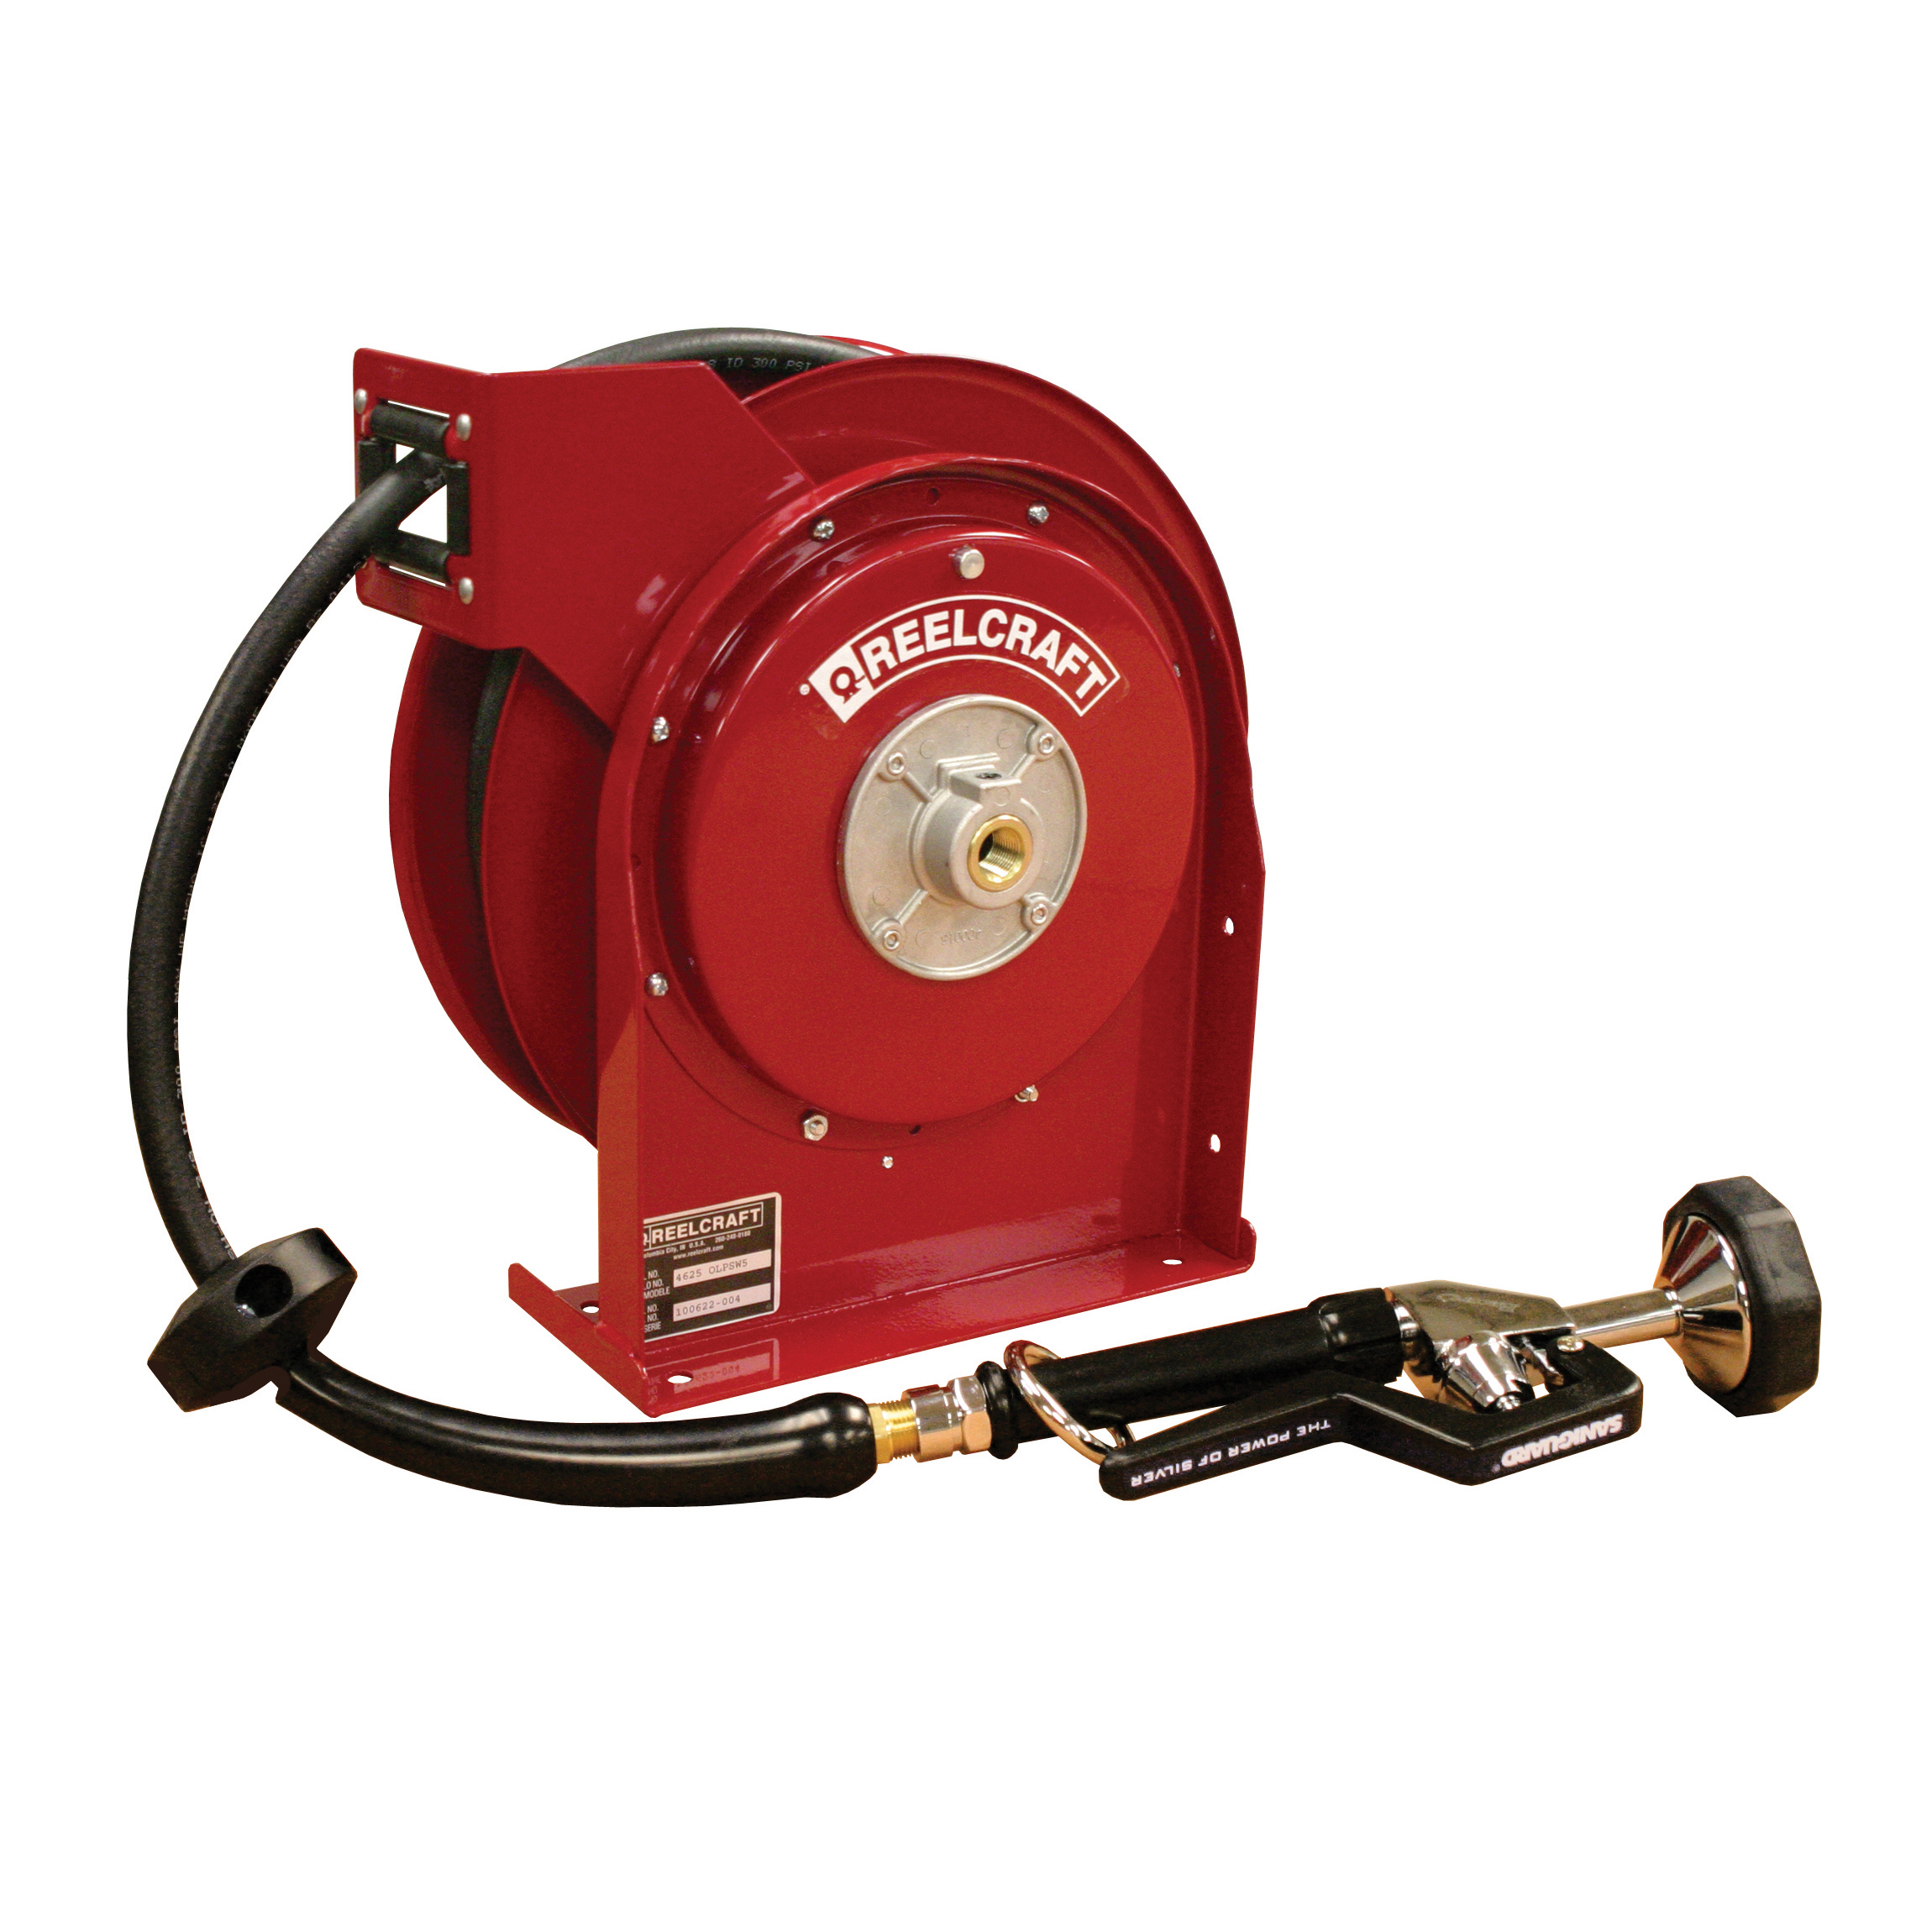 Reelcraft® 4625 OLP 4000 Low Pressure Premium Duty Hose Reel With Hose, 3/8 in ID X 3/5 in OD x 25 ft L Hose, 300 psi Pressure, 12-3/8 in Dia x 2-1/2 in W Reel, Domestic